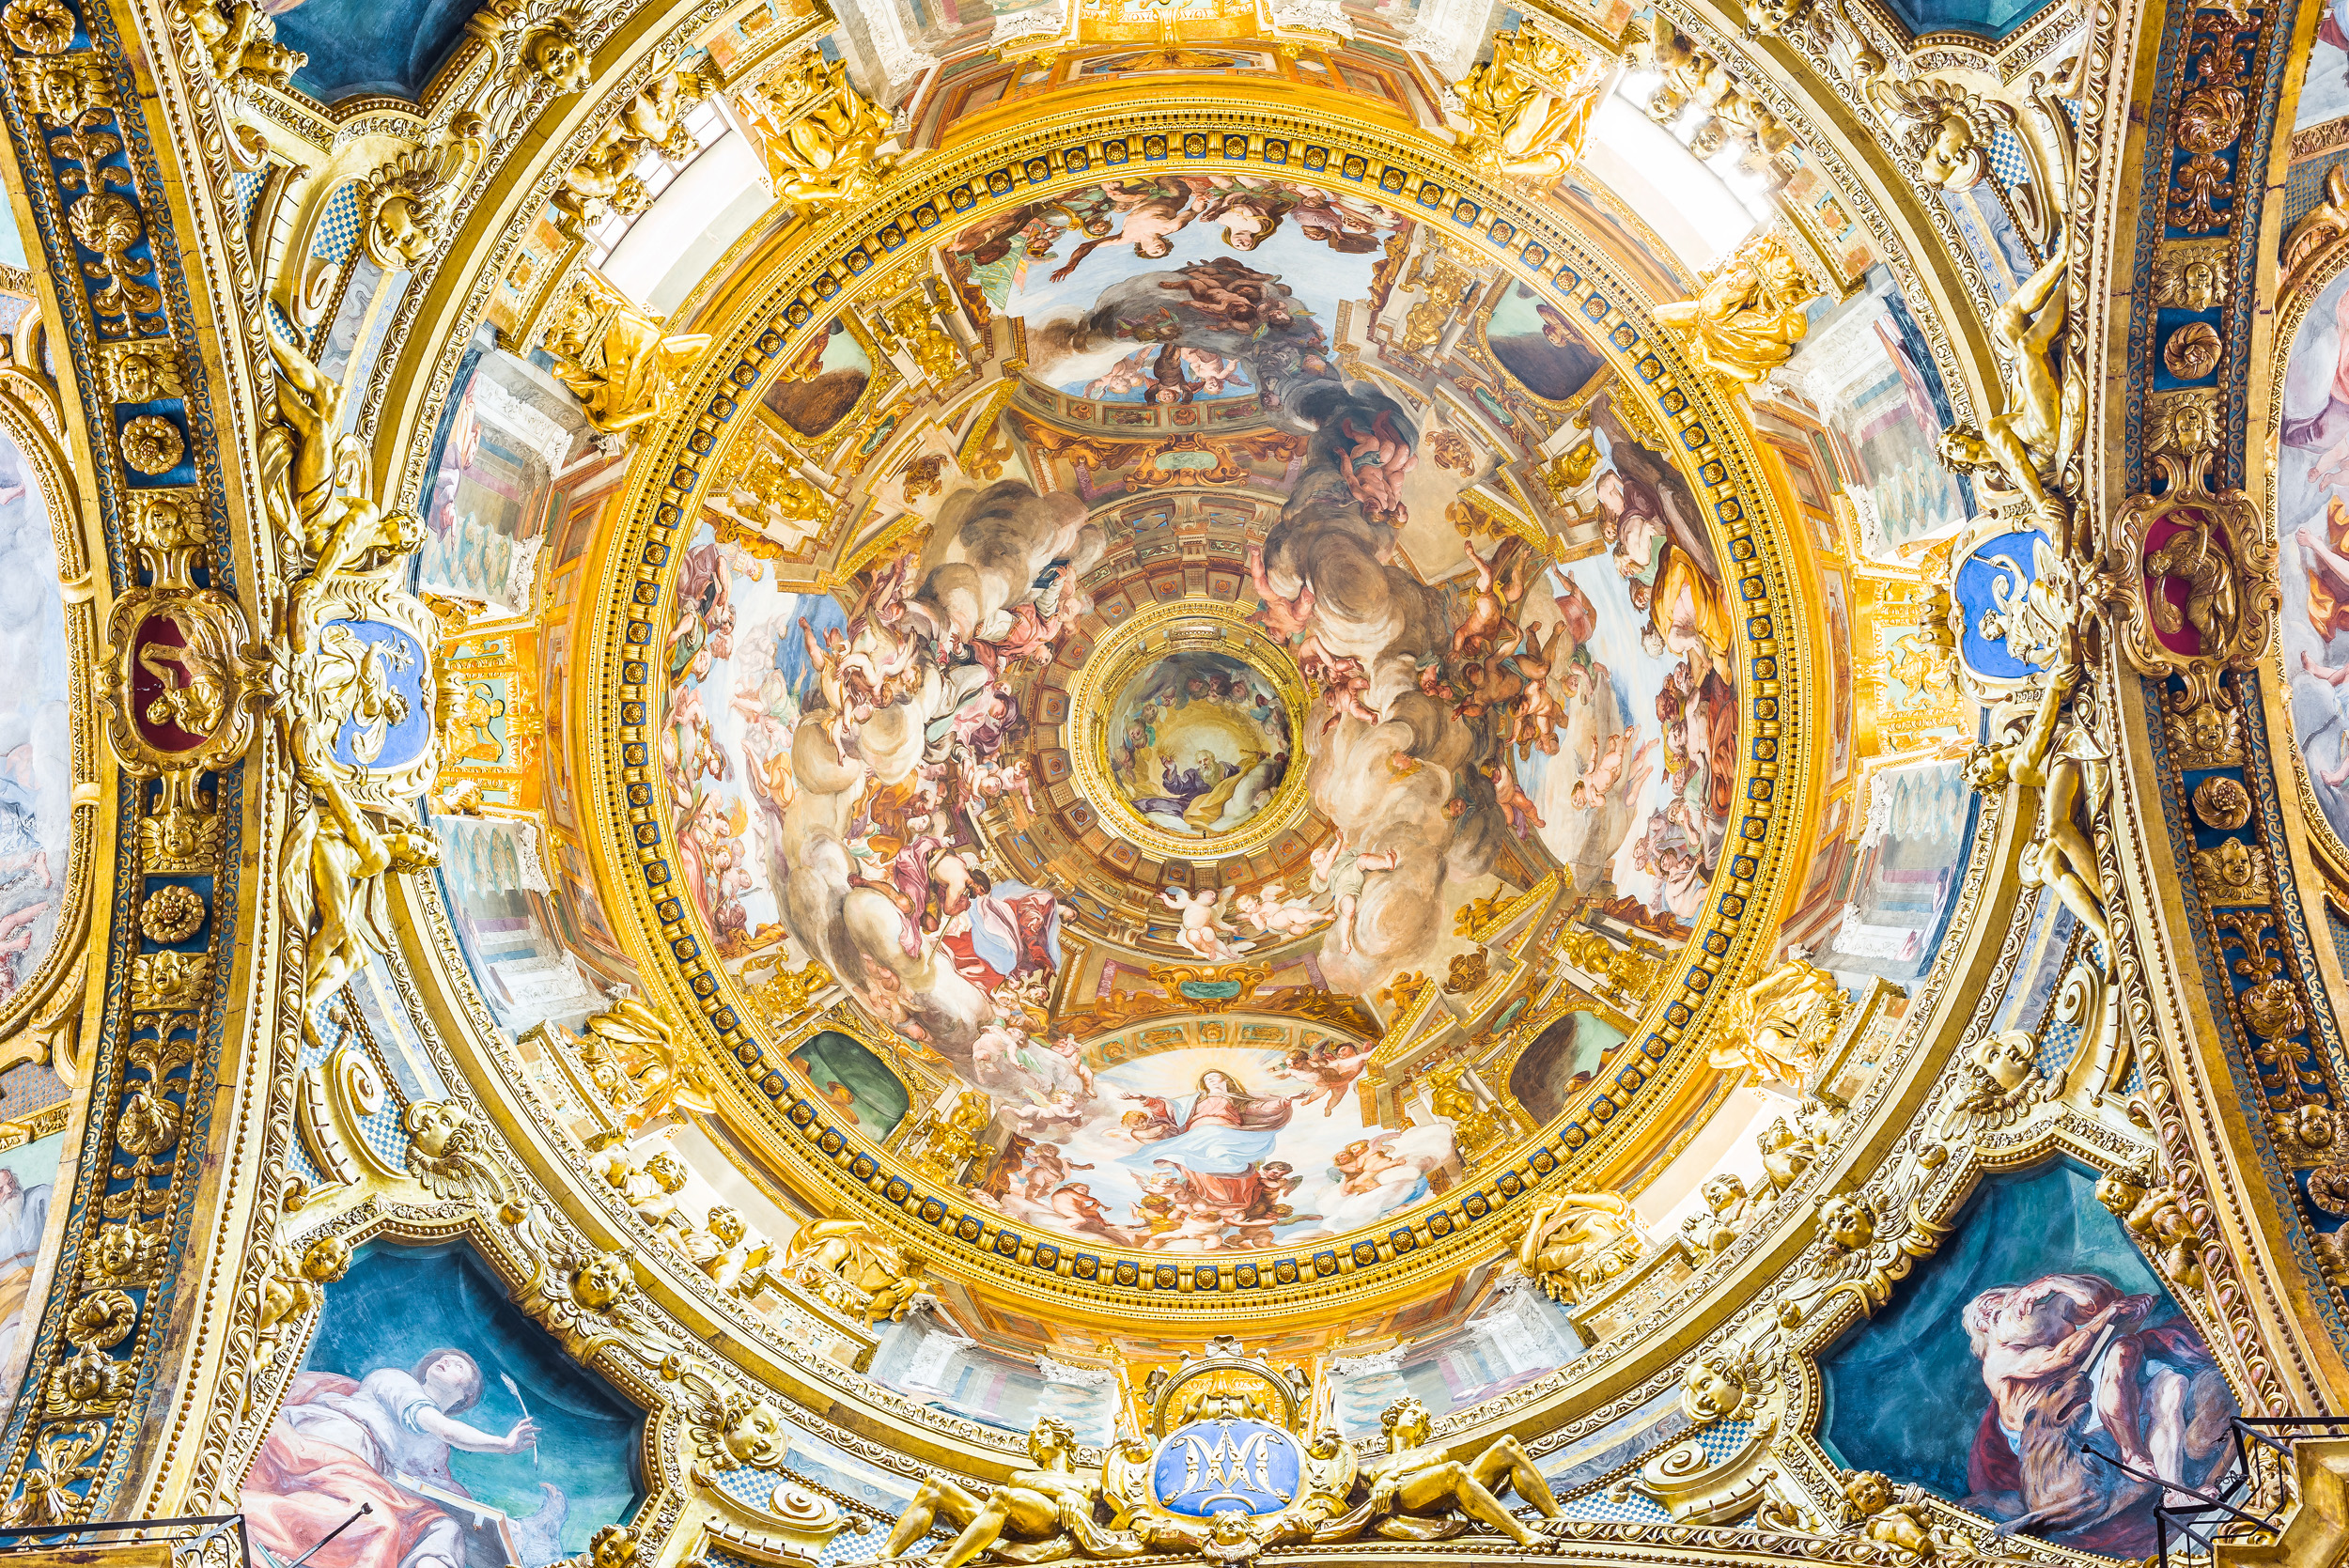 An ornate, gold embossed fresco in a basilica in Genoa, Italy